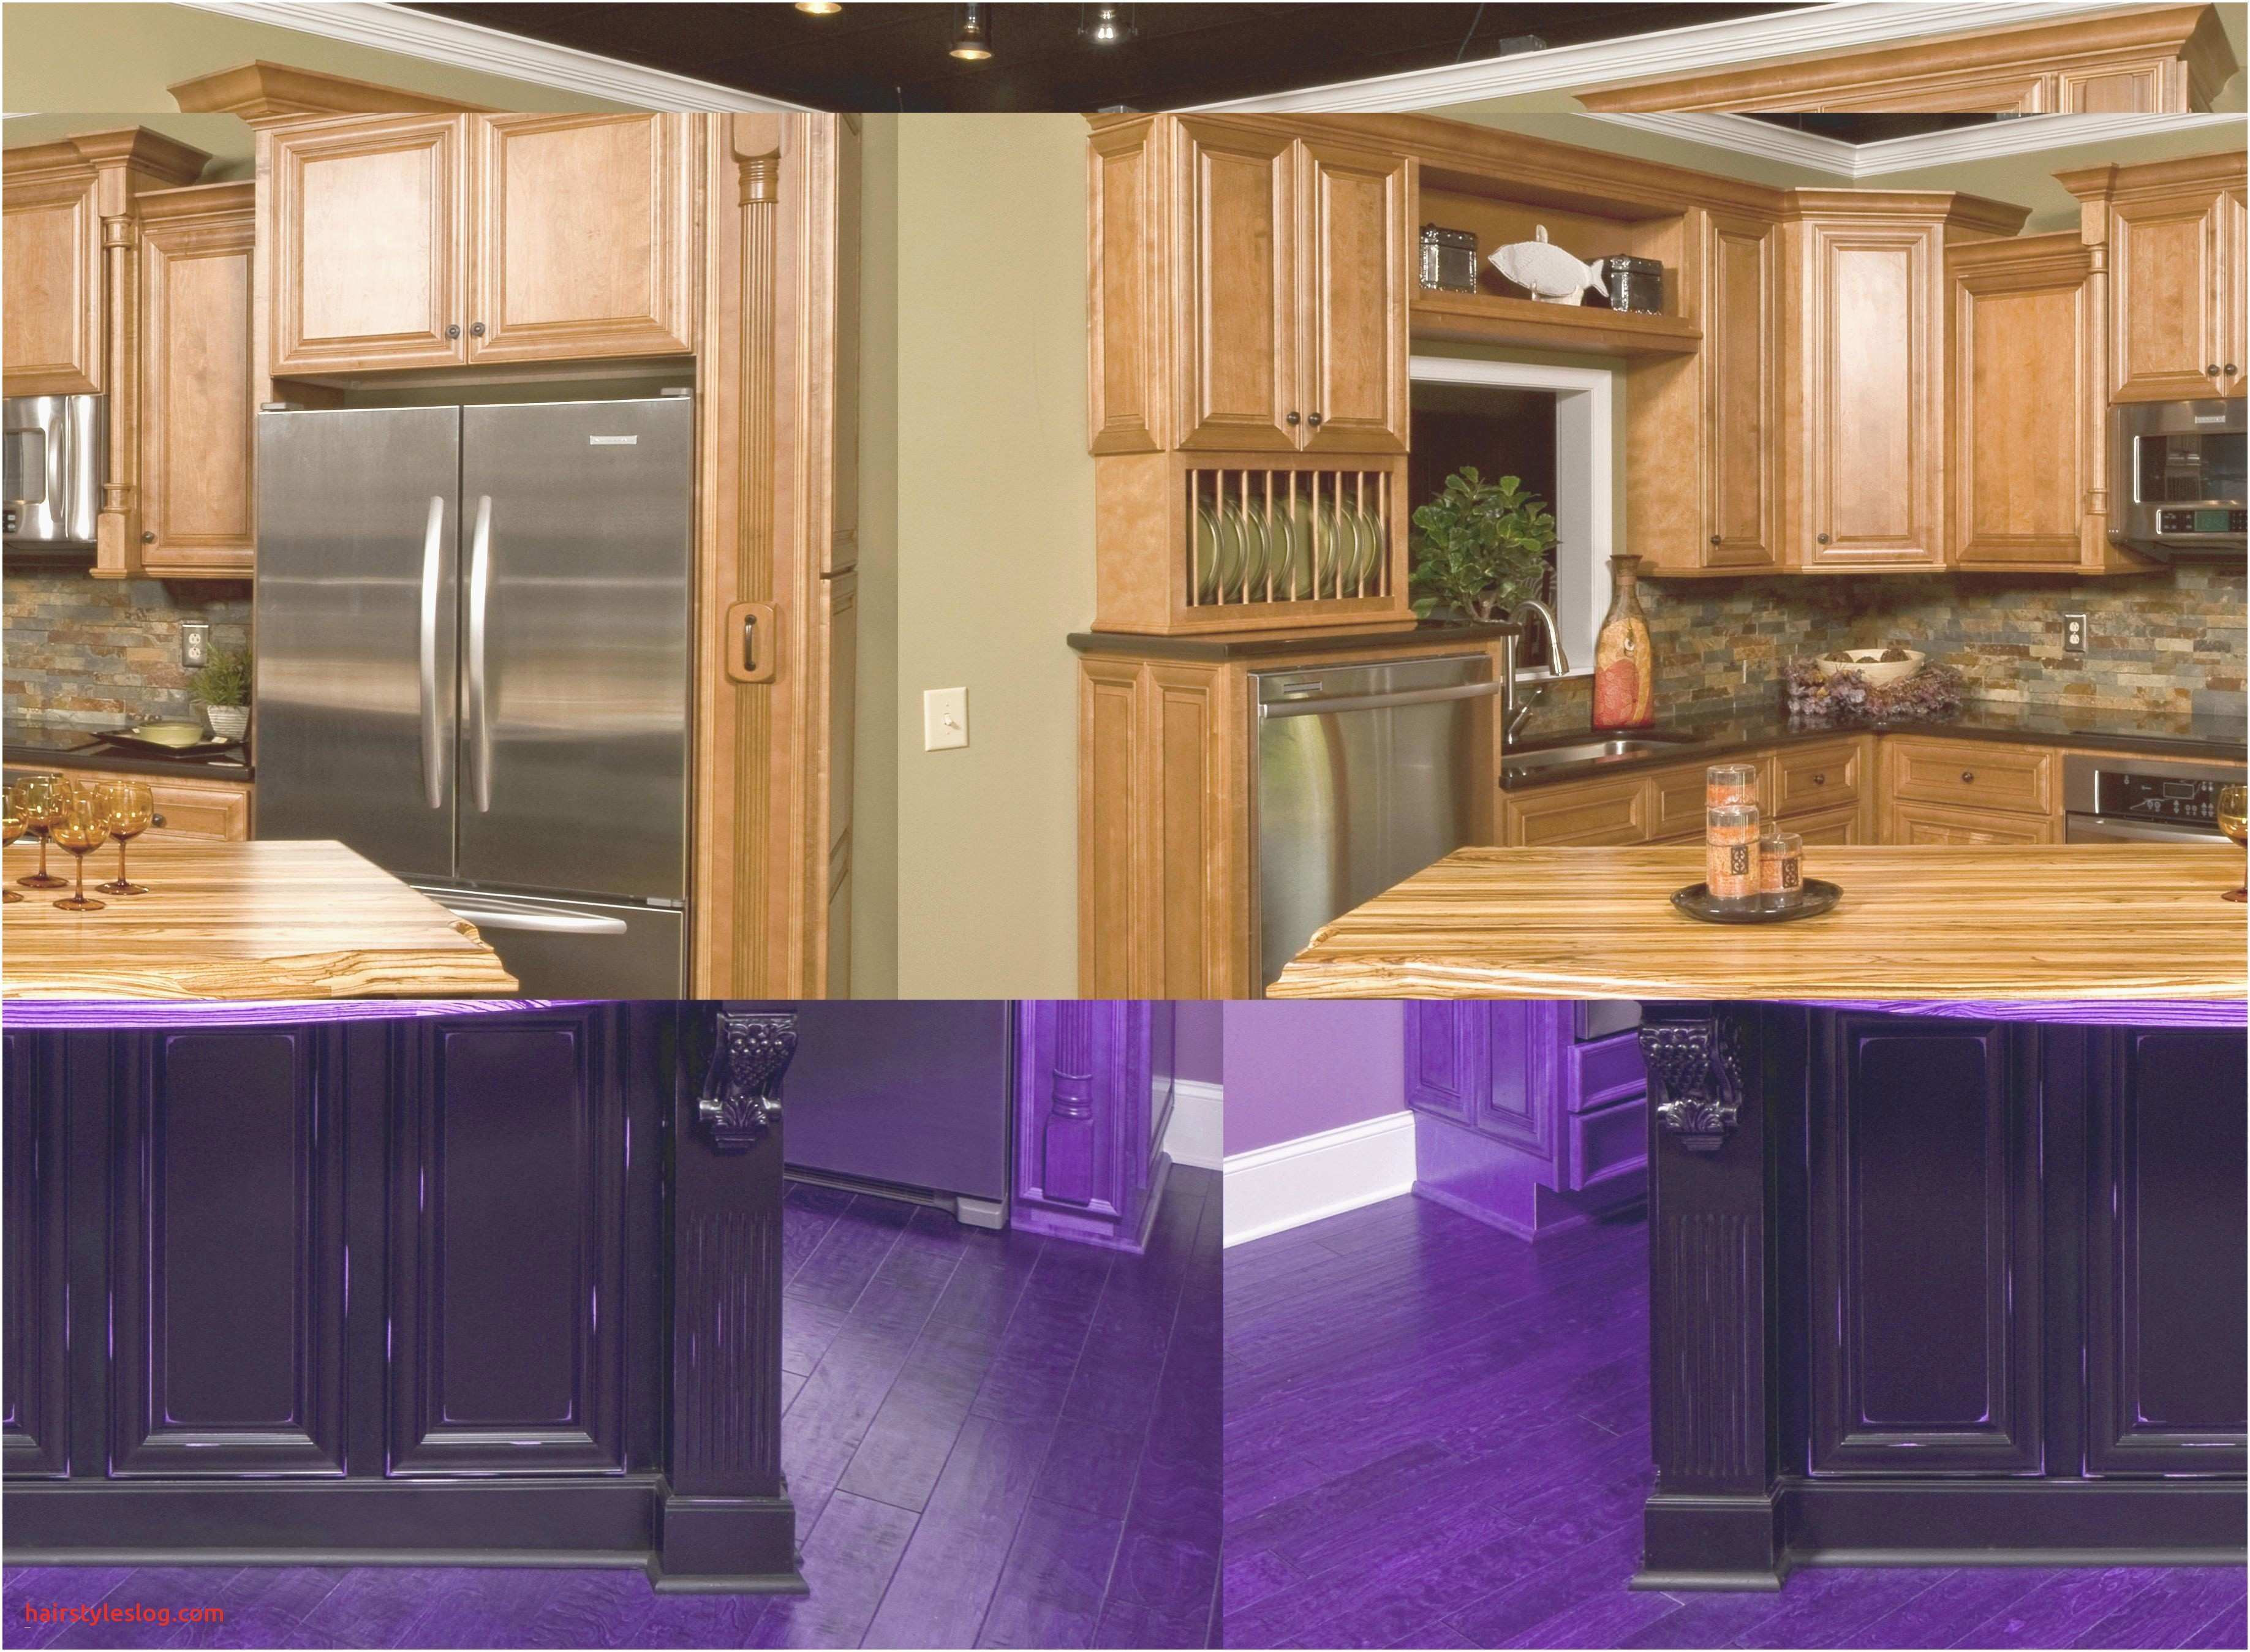 discount hardwood flooring for sale of luxurious and splendid cheap kitchen cabinets philadelphia for with ceiling cheap kitchen cabinets philadelphia decor kitchen cabinets wholesale kitchen ideas